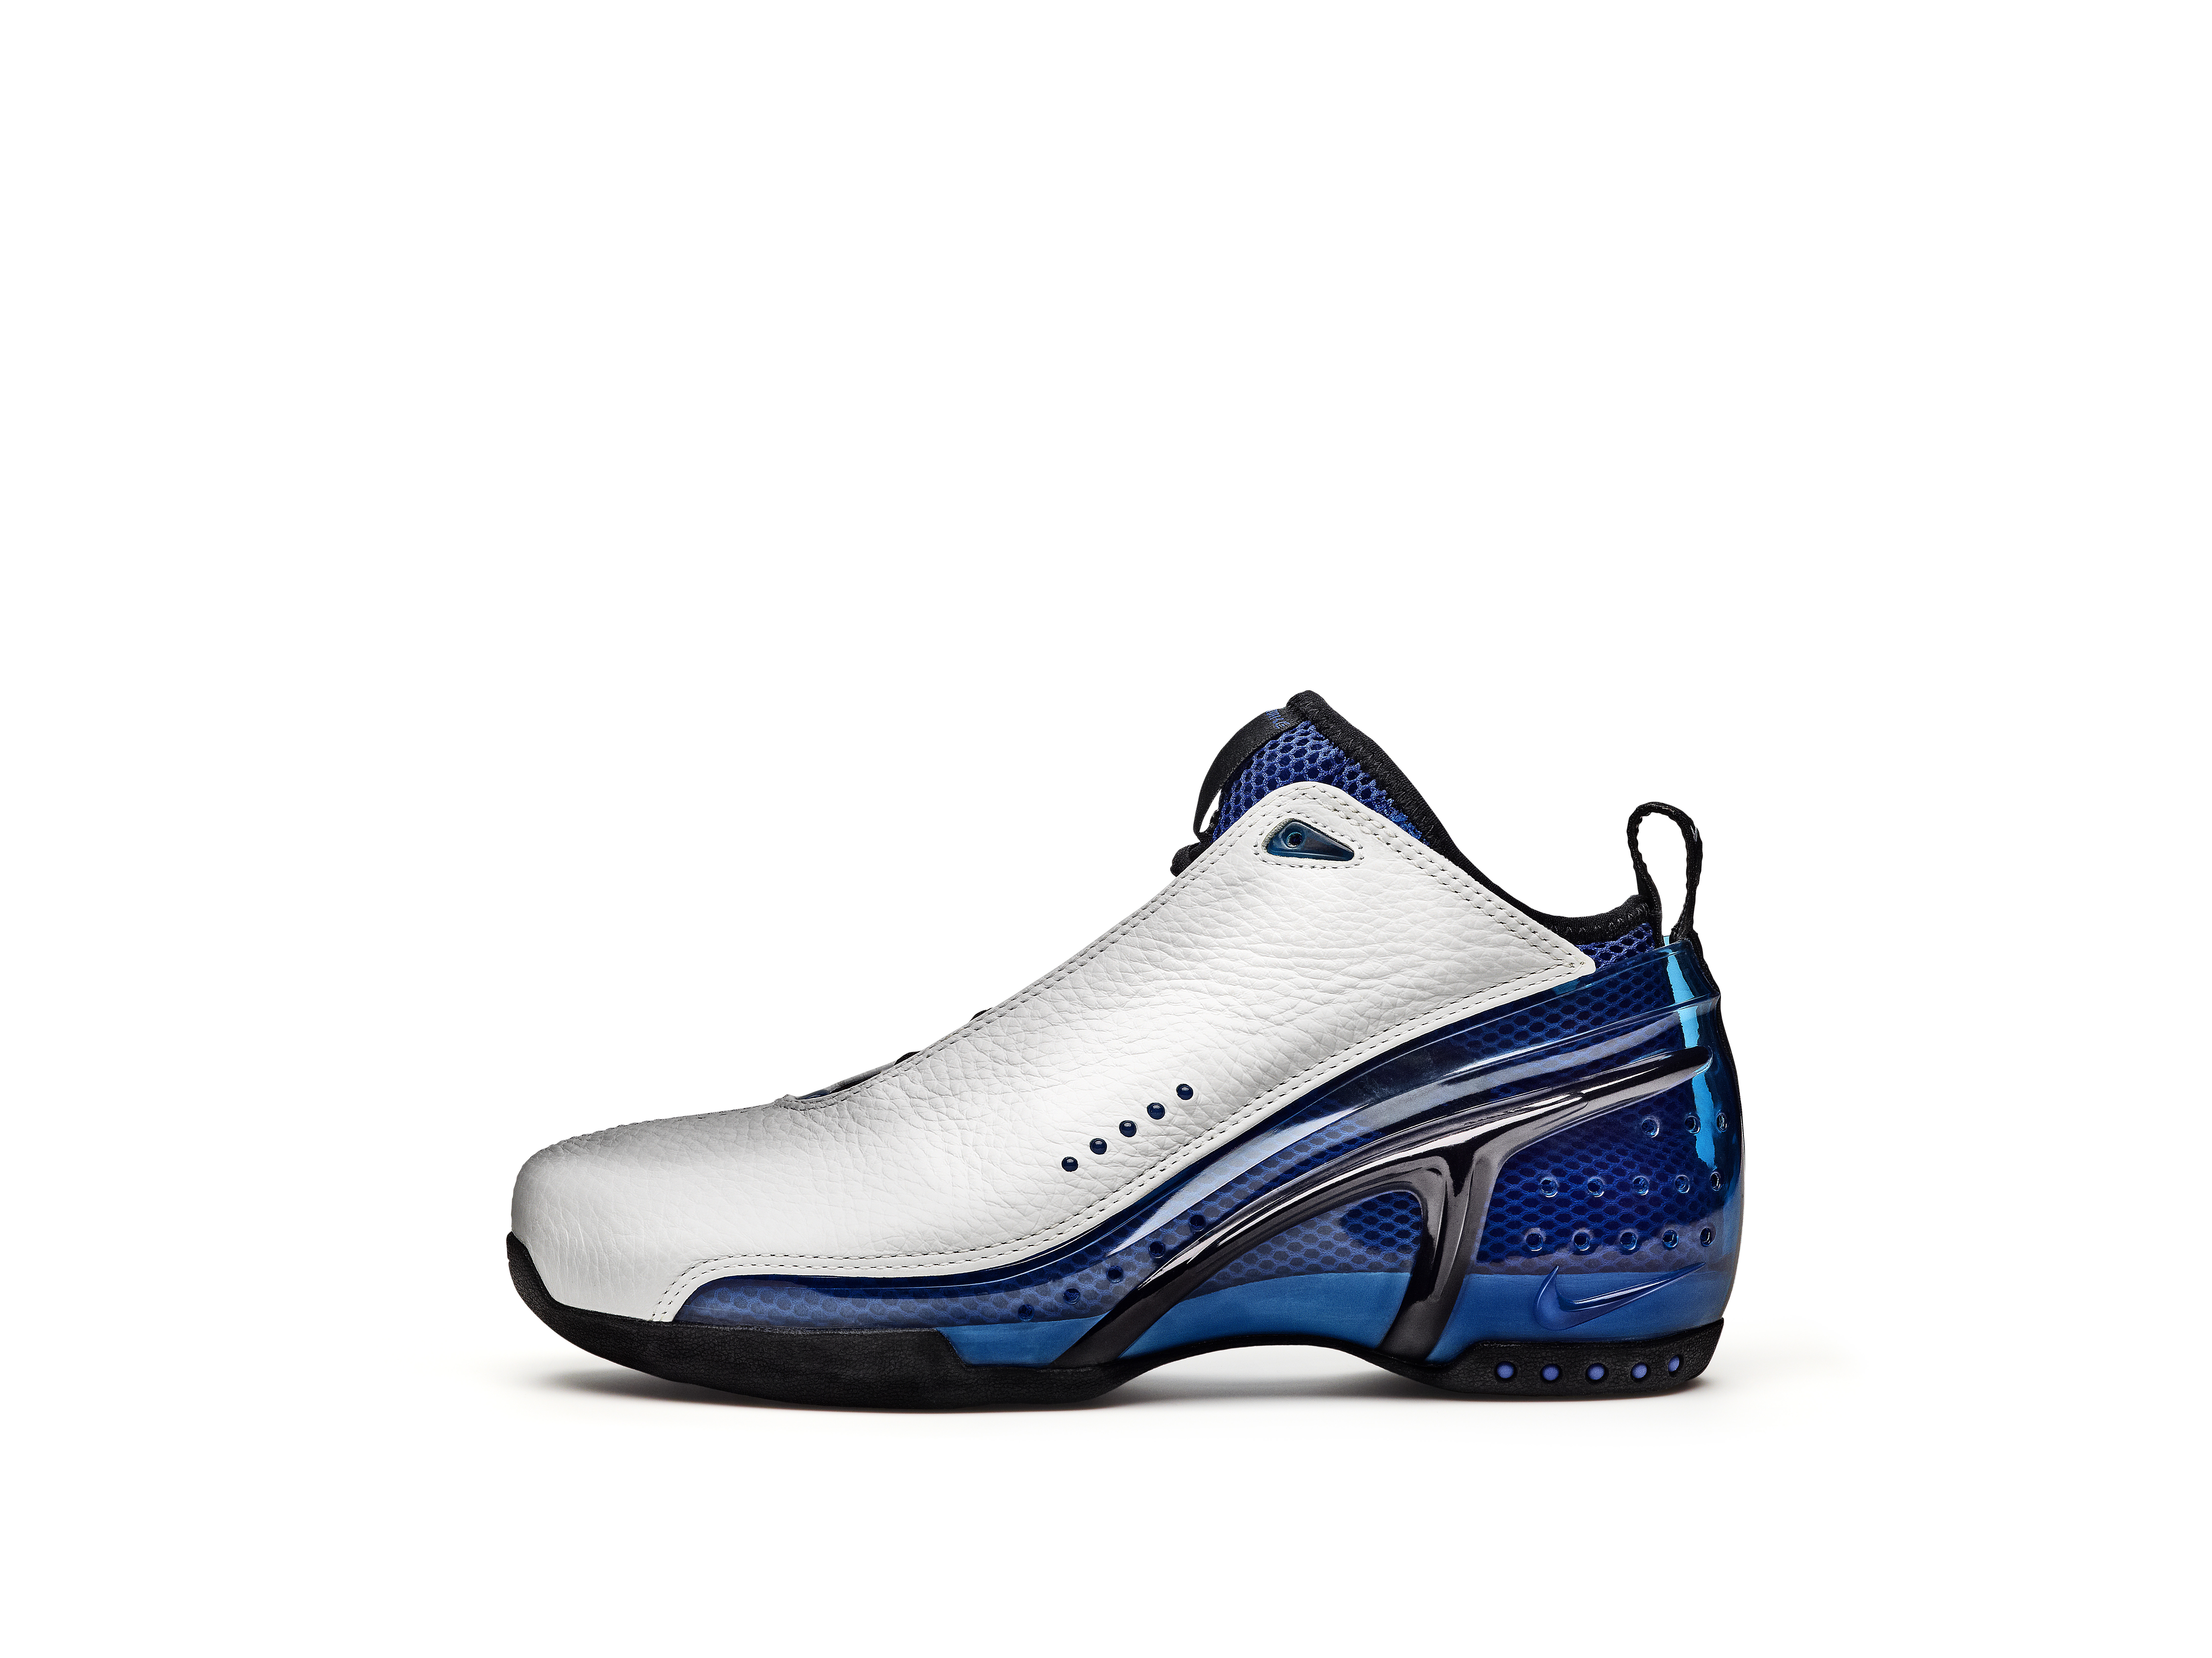 Nike Zoom Air Flight Basketball Shoes